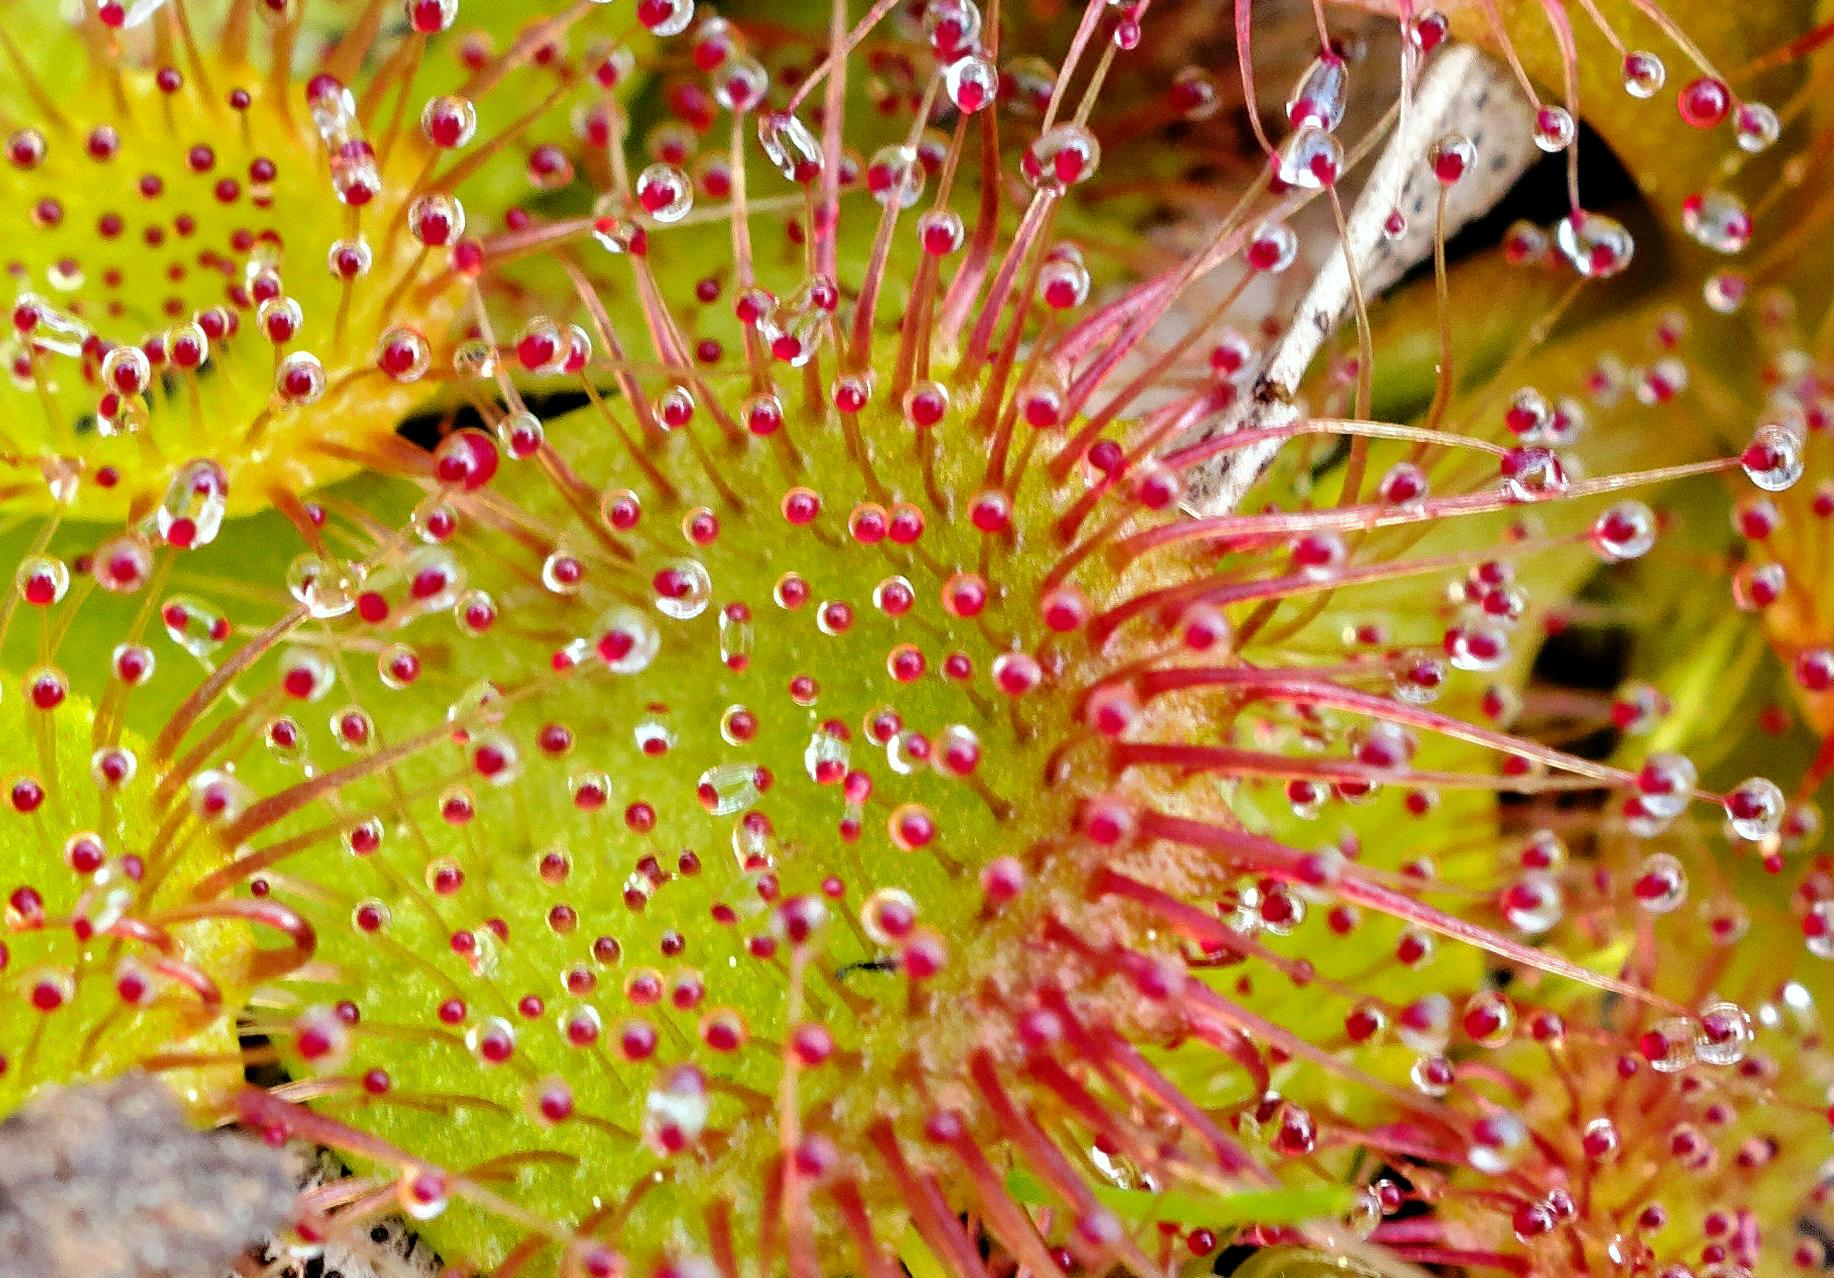 Drosera-6-detail.jpeg